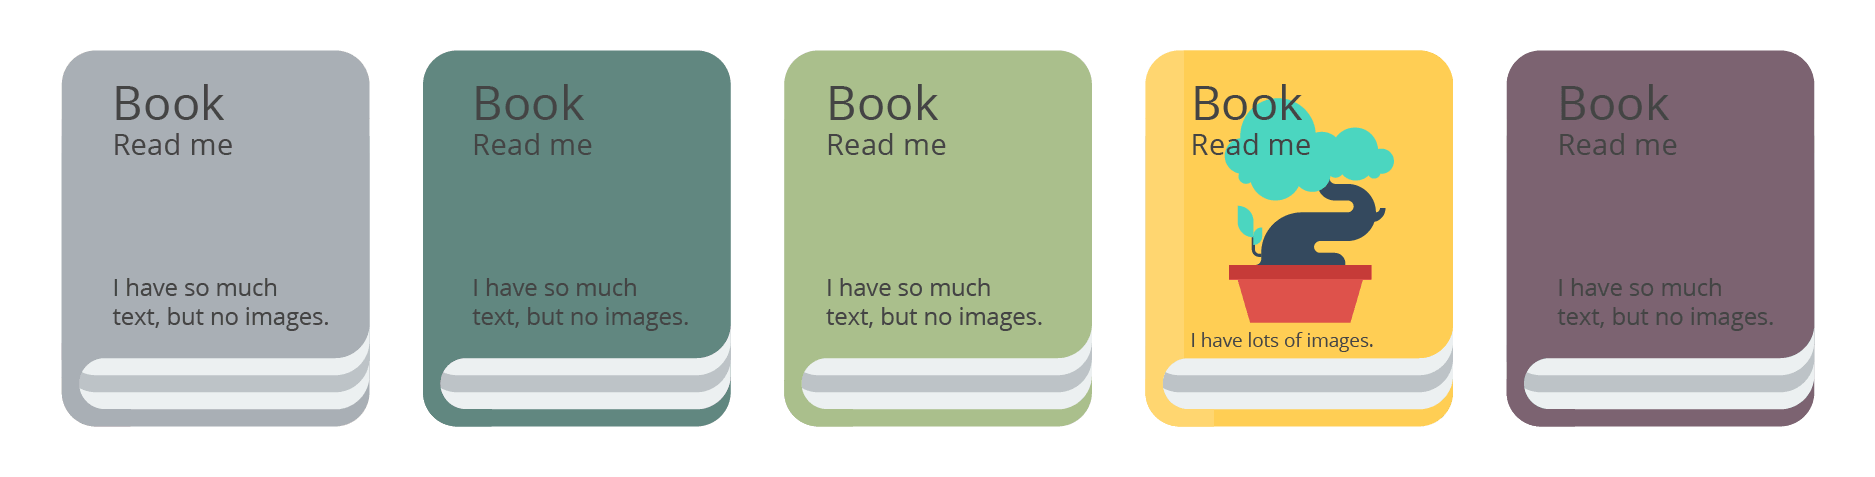 Which book would you choose to read? Wouldn't you pick the one with an image on it? How fast can you figure out each book's subject, or get interested to know more about it? What if these were surveys? Wouldn't you participate in the one that look more welcoming?